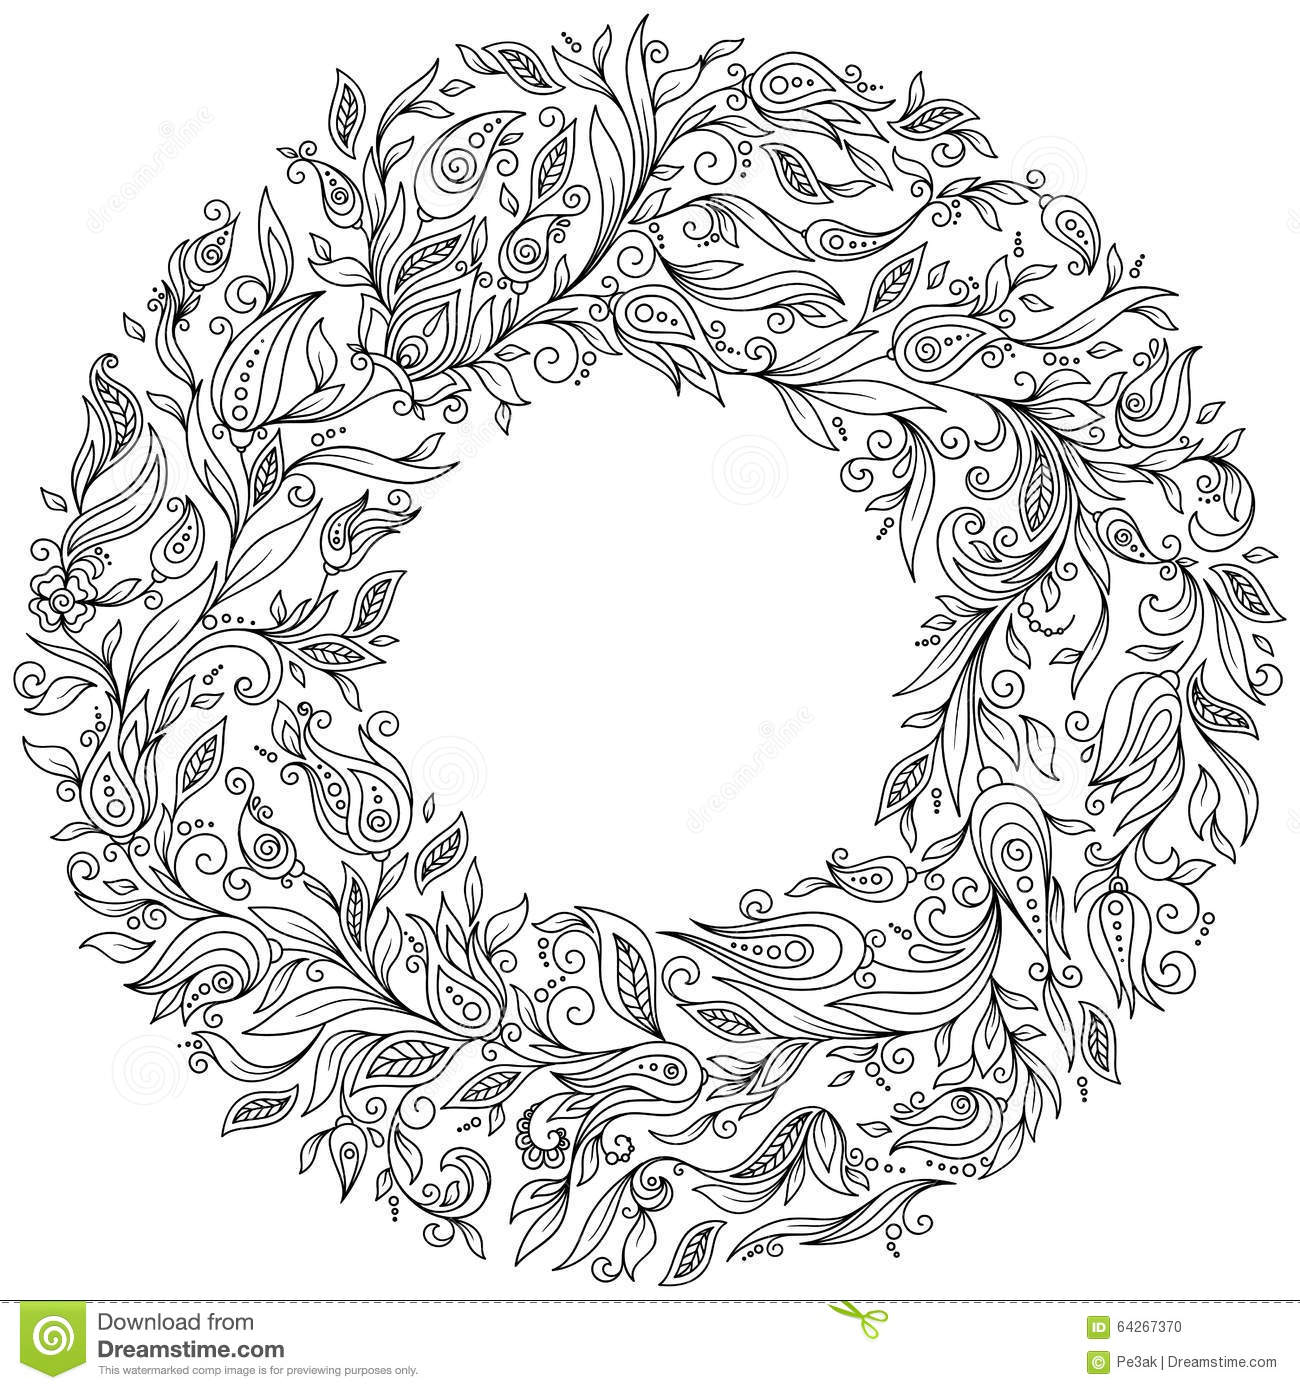 Adult Coloring Pattern Ethnic Floral Retro Doodle